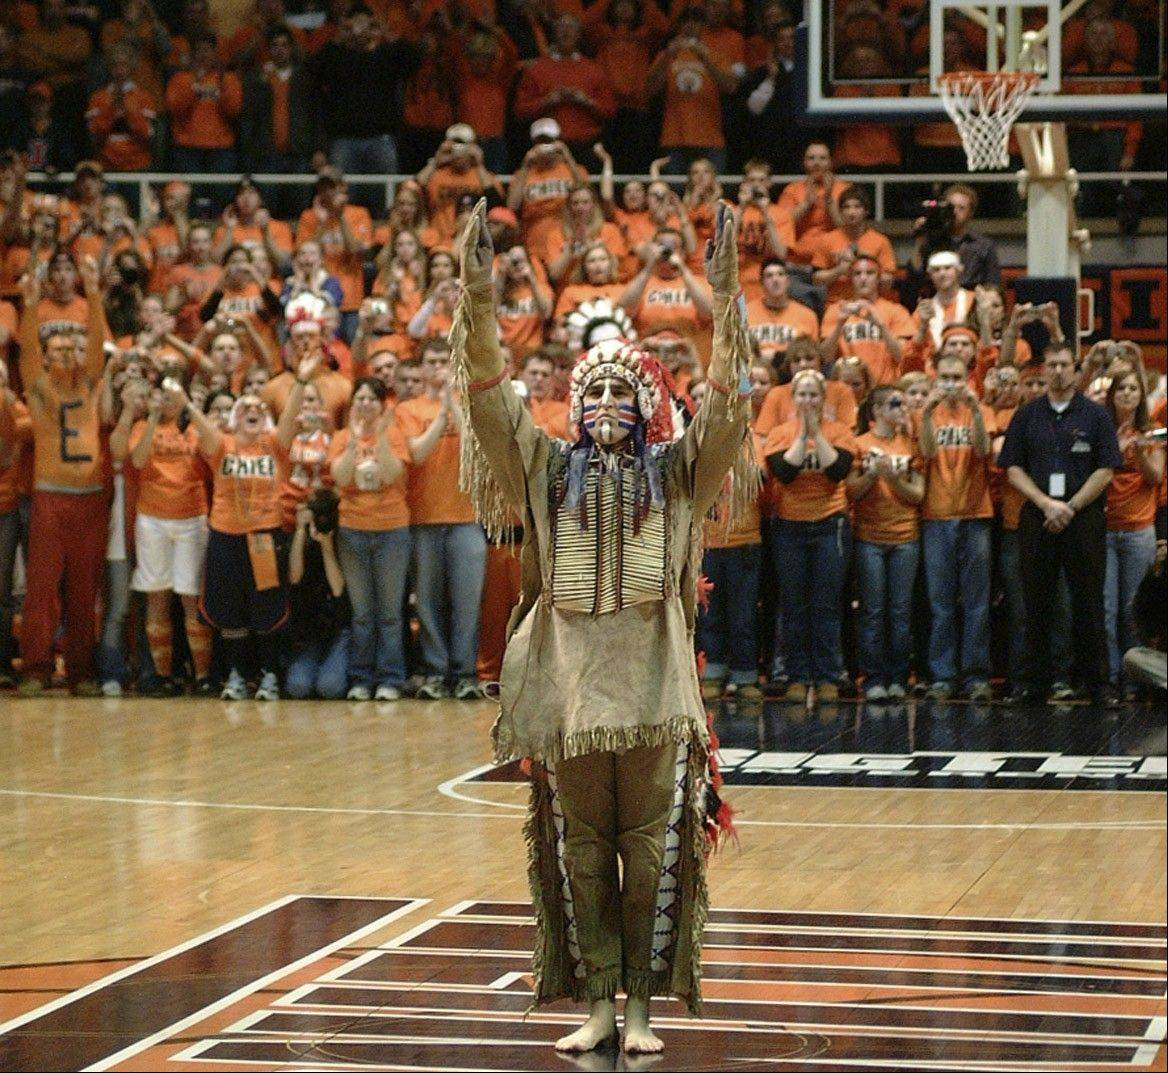 Chief Illiniwek offers one final salute to the crowd gathered at Assembly Hall in Champaign for a basketball game between Illinois and Michigan in 2007.